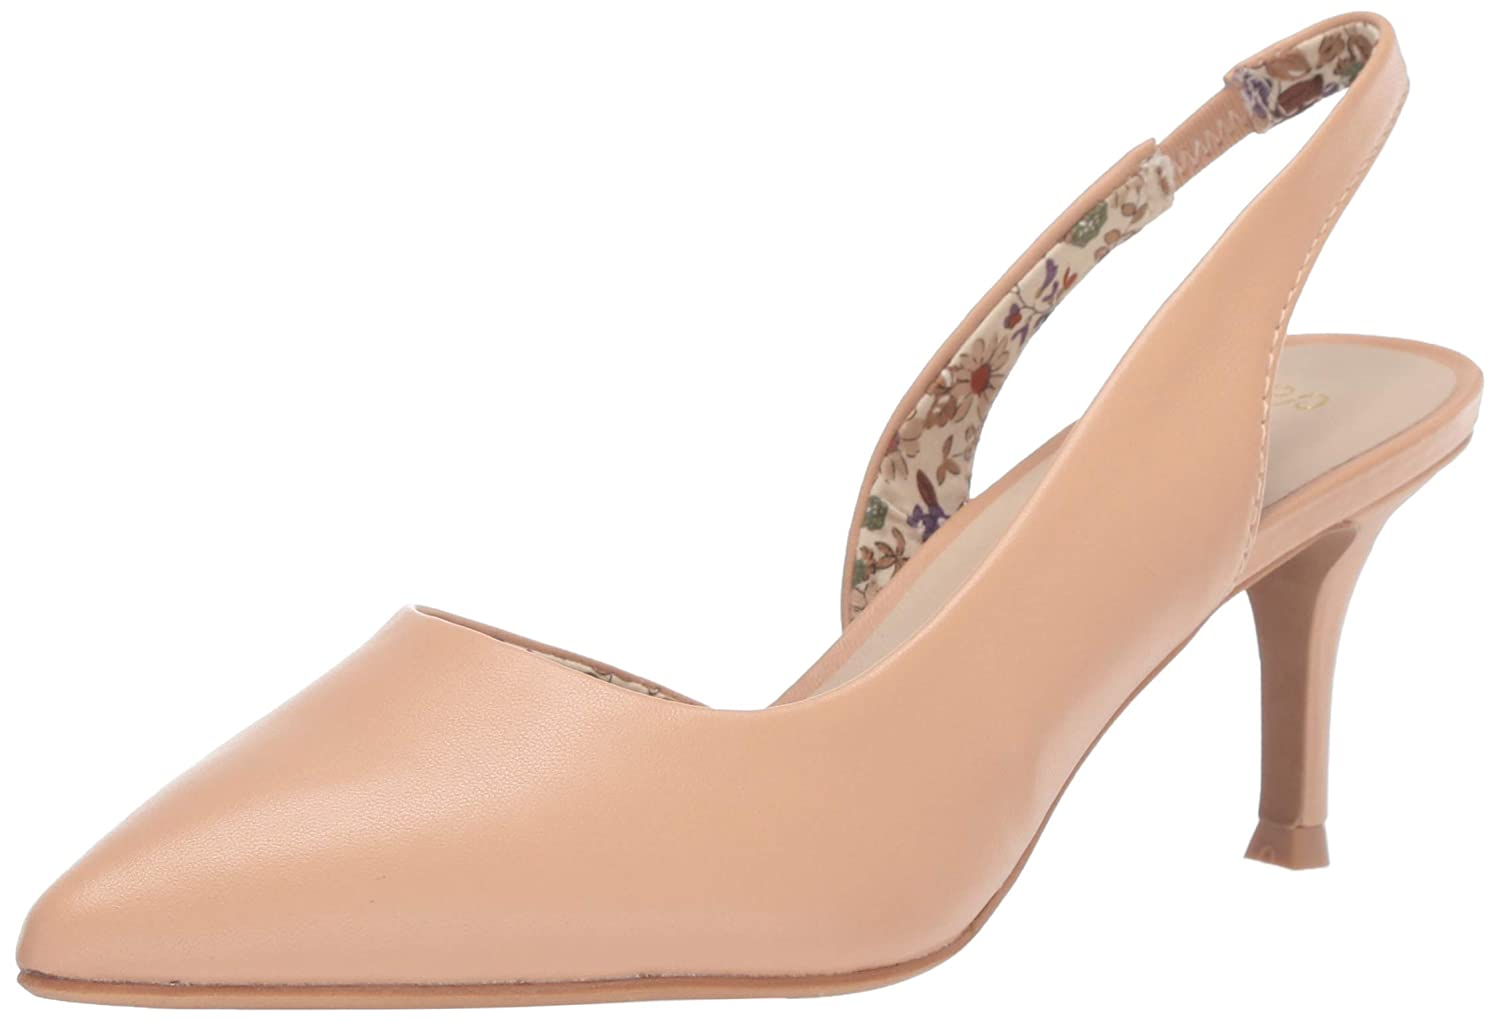 Nude Seychelles Womens Ornament Heeled Sandal